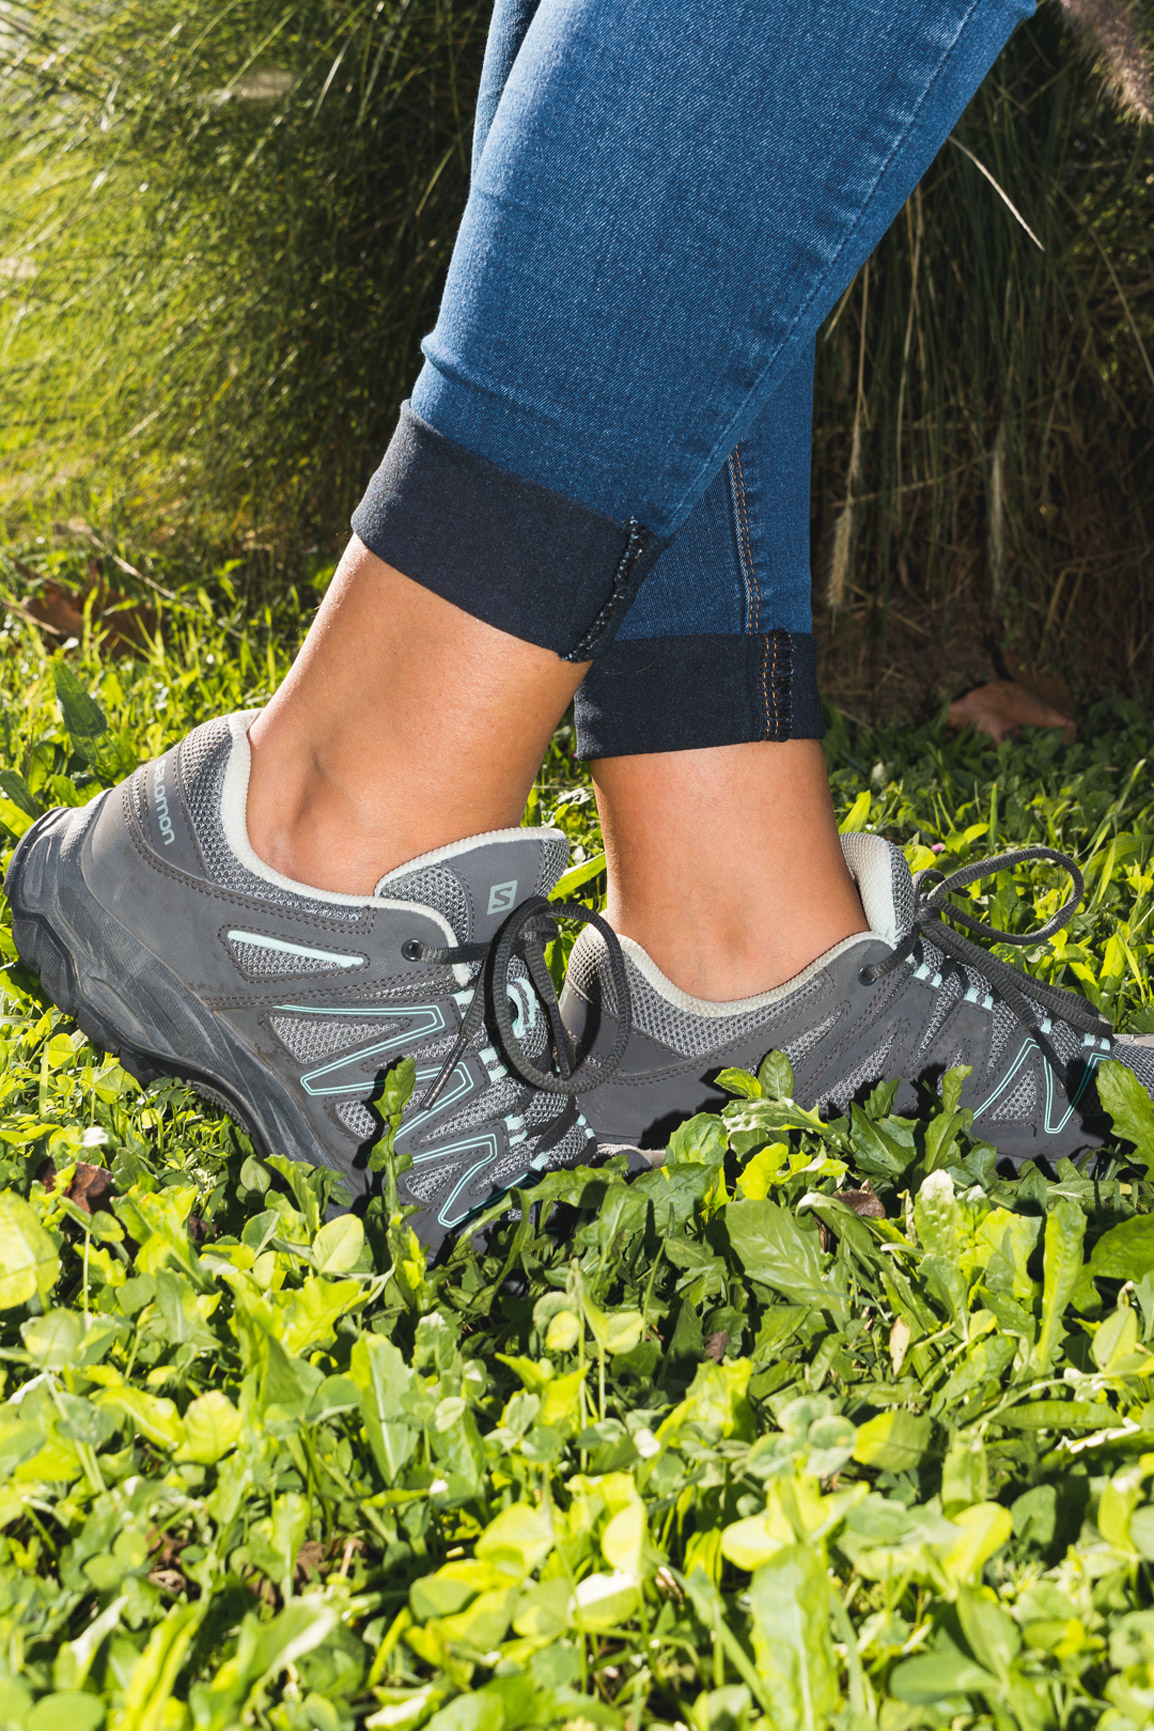 Salomon Cobaki Hiking Shoes are one of our favorites due to their comfort